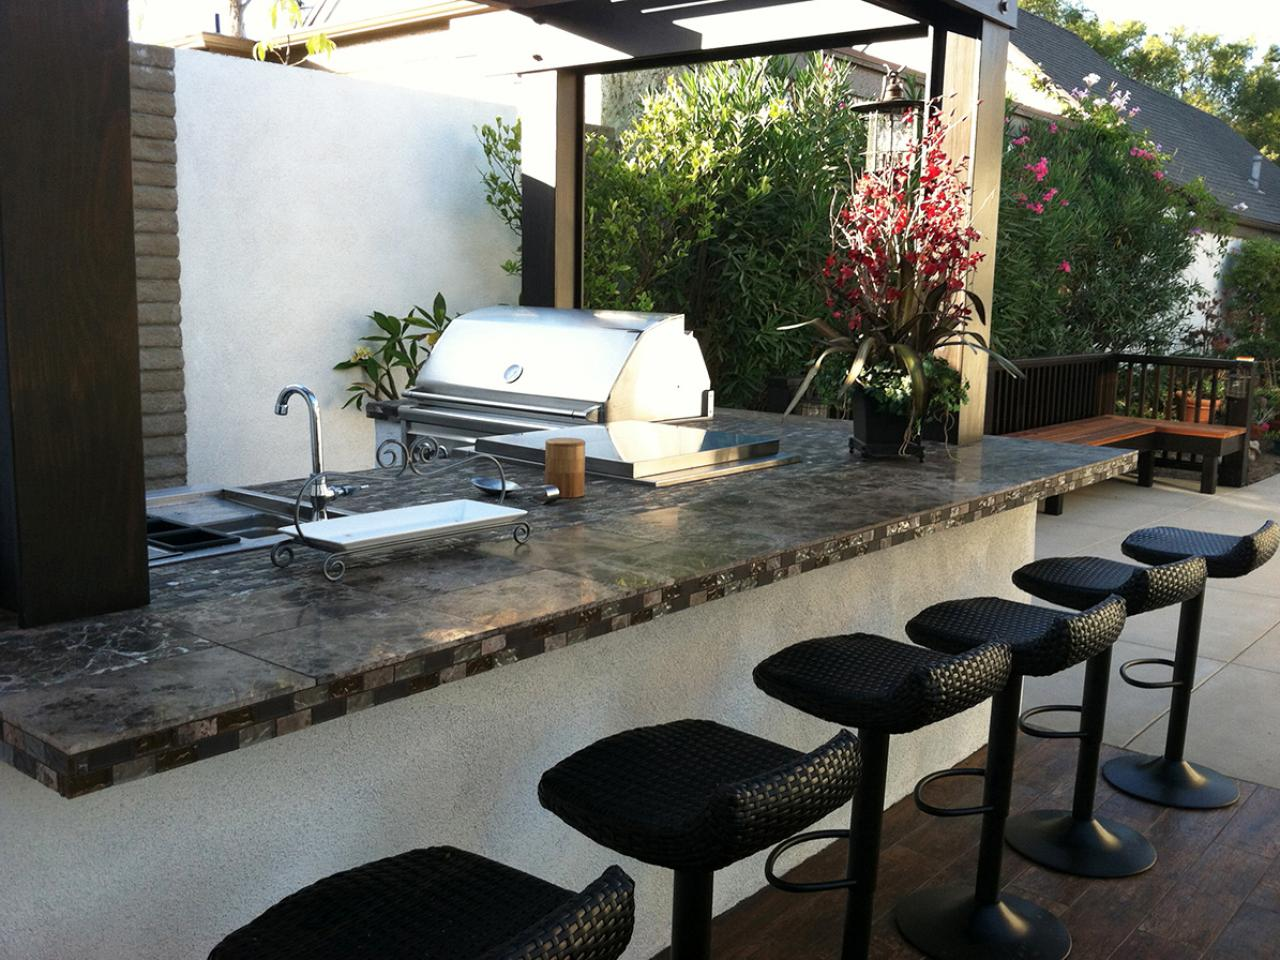 Outdoor Grill Design Ideas outdoor kitchen design ideas Outdoor Kitchen Design Ideas Pictures Tips Expert Advice Hgtv